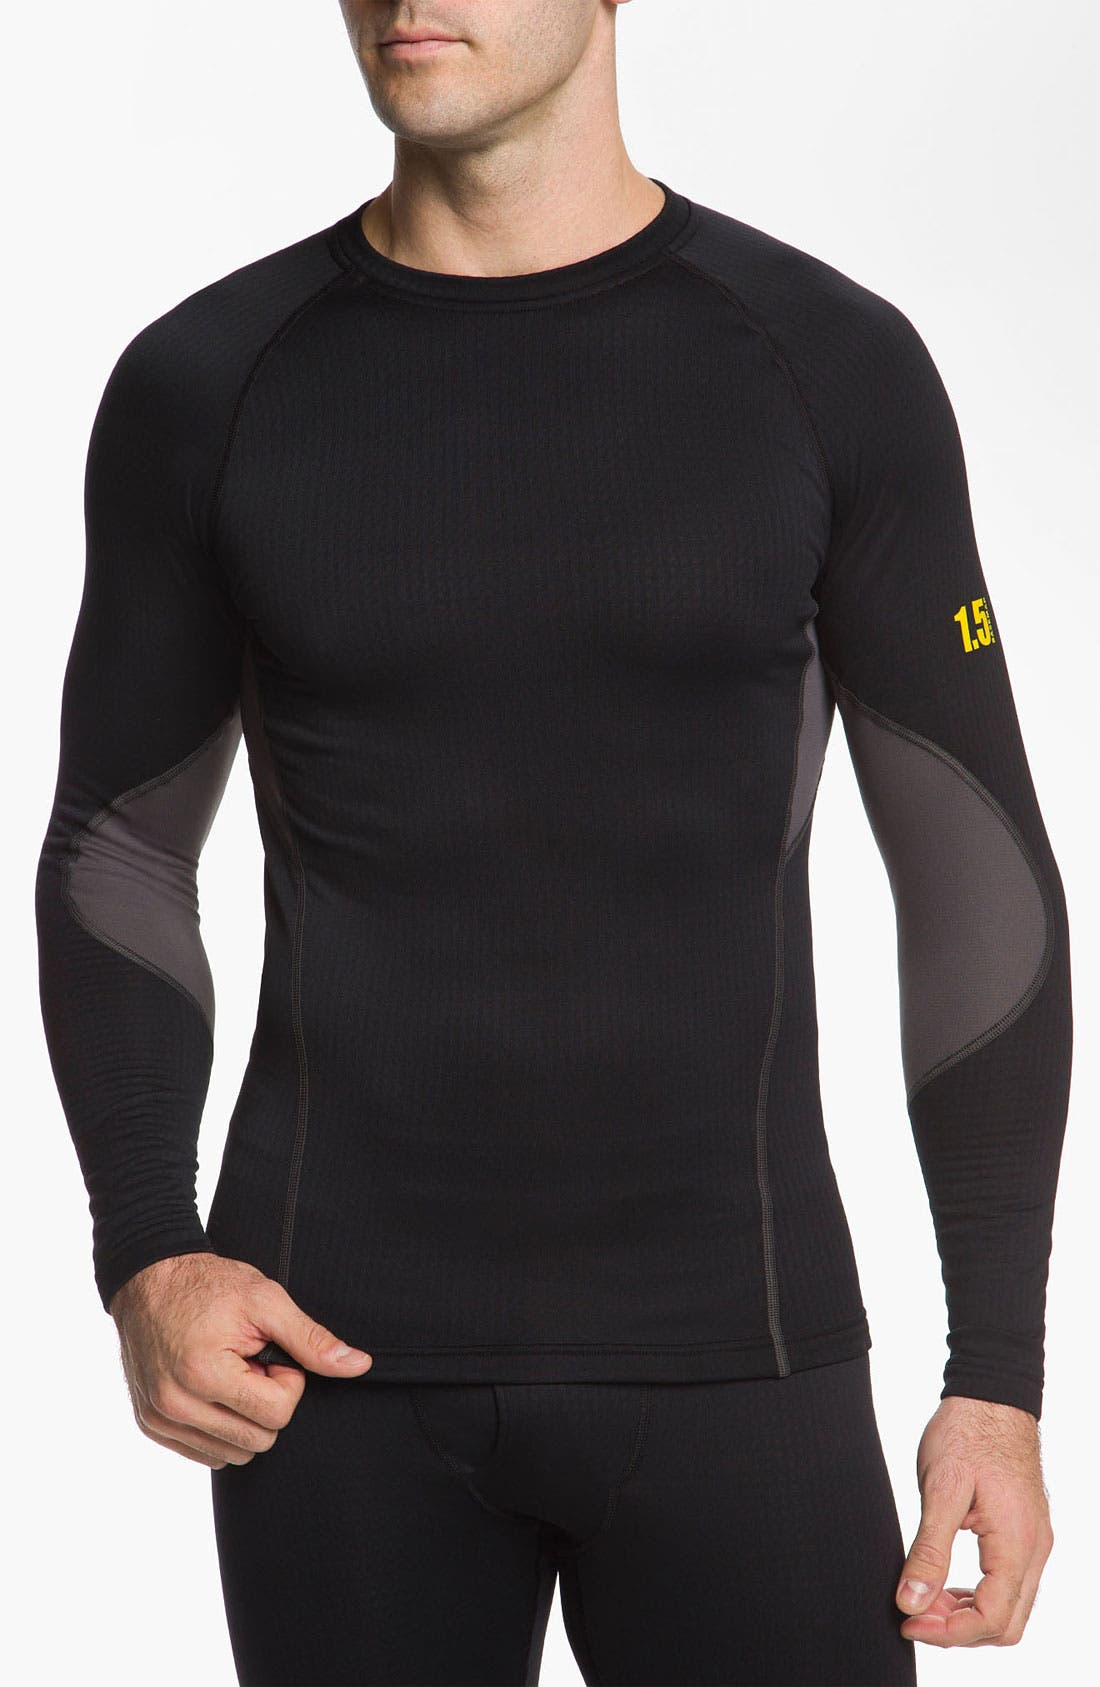 Alternate Image 1 Selected - Under Armour 'Base 1.5' Fitted Crewneck Top (Online Exclusive)